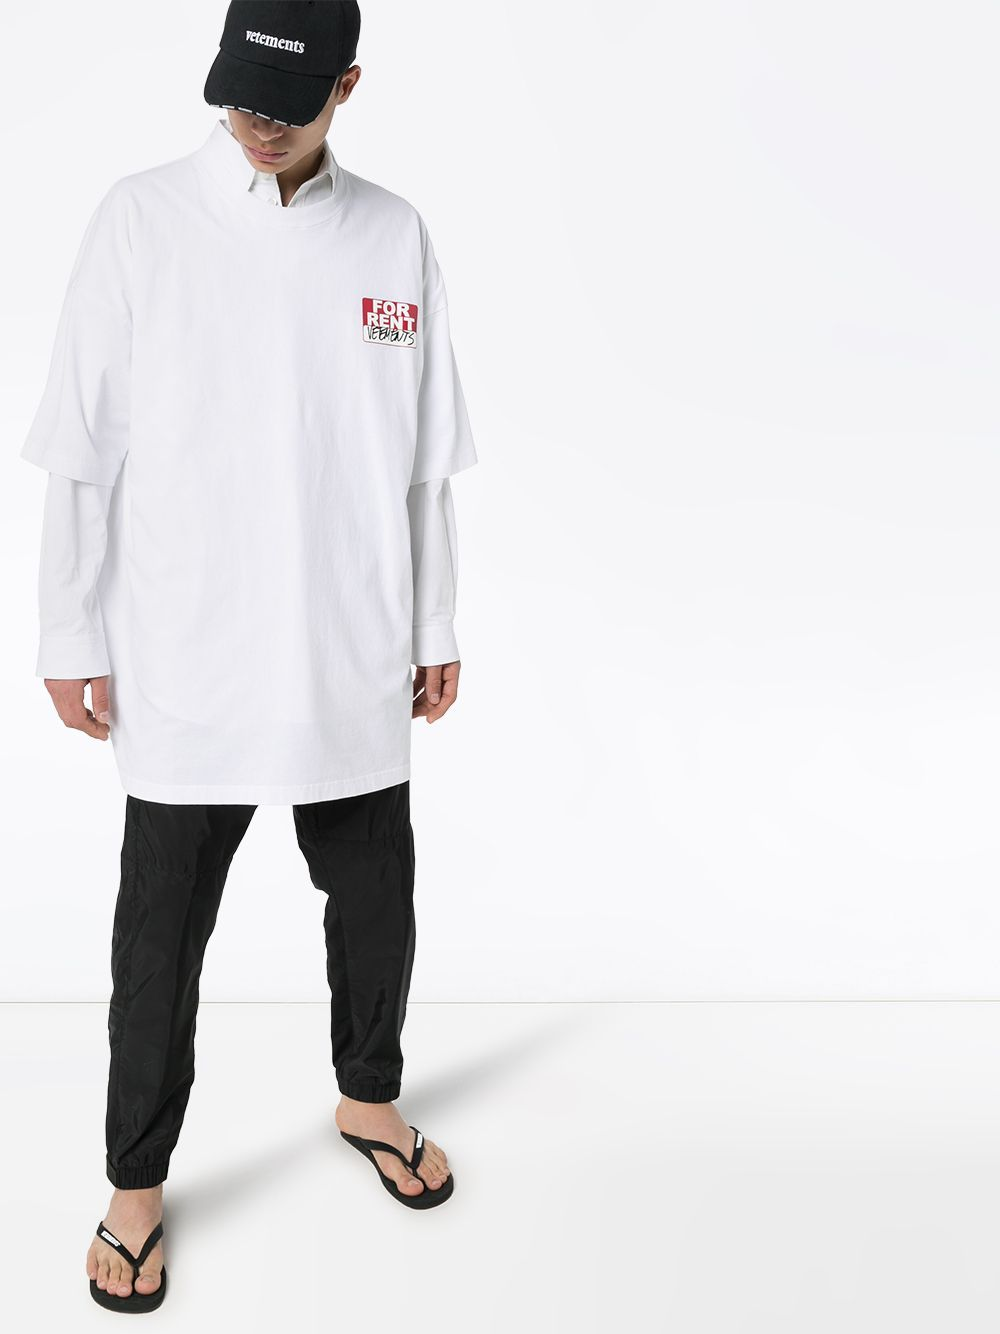 VETEMENTS 'FOR RENT' t-shirt white